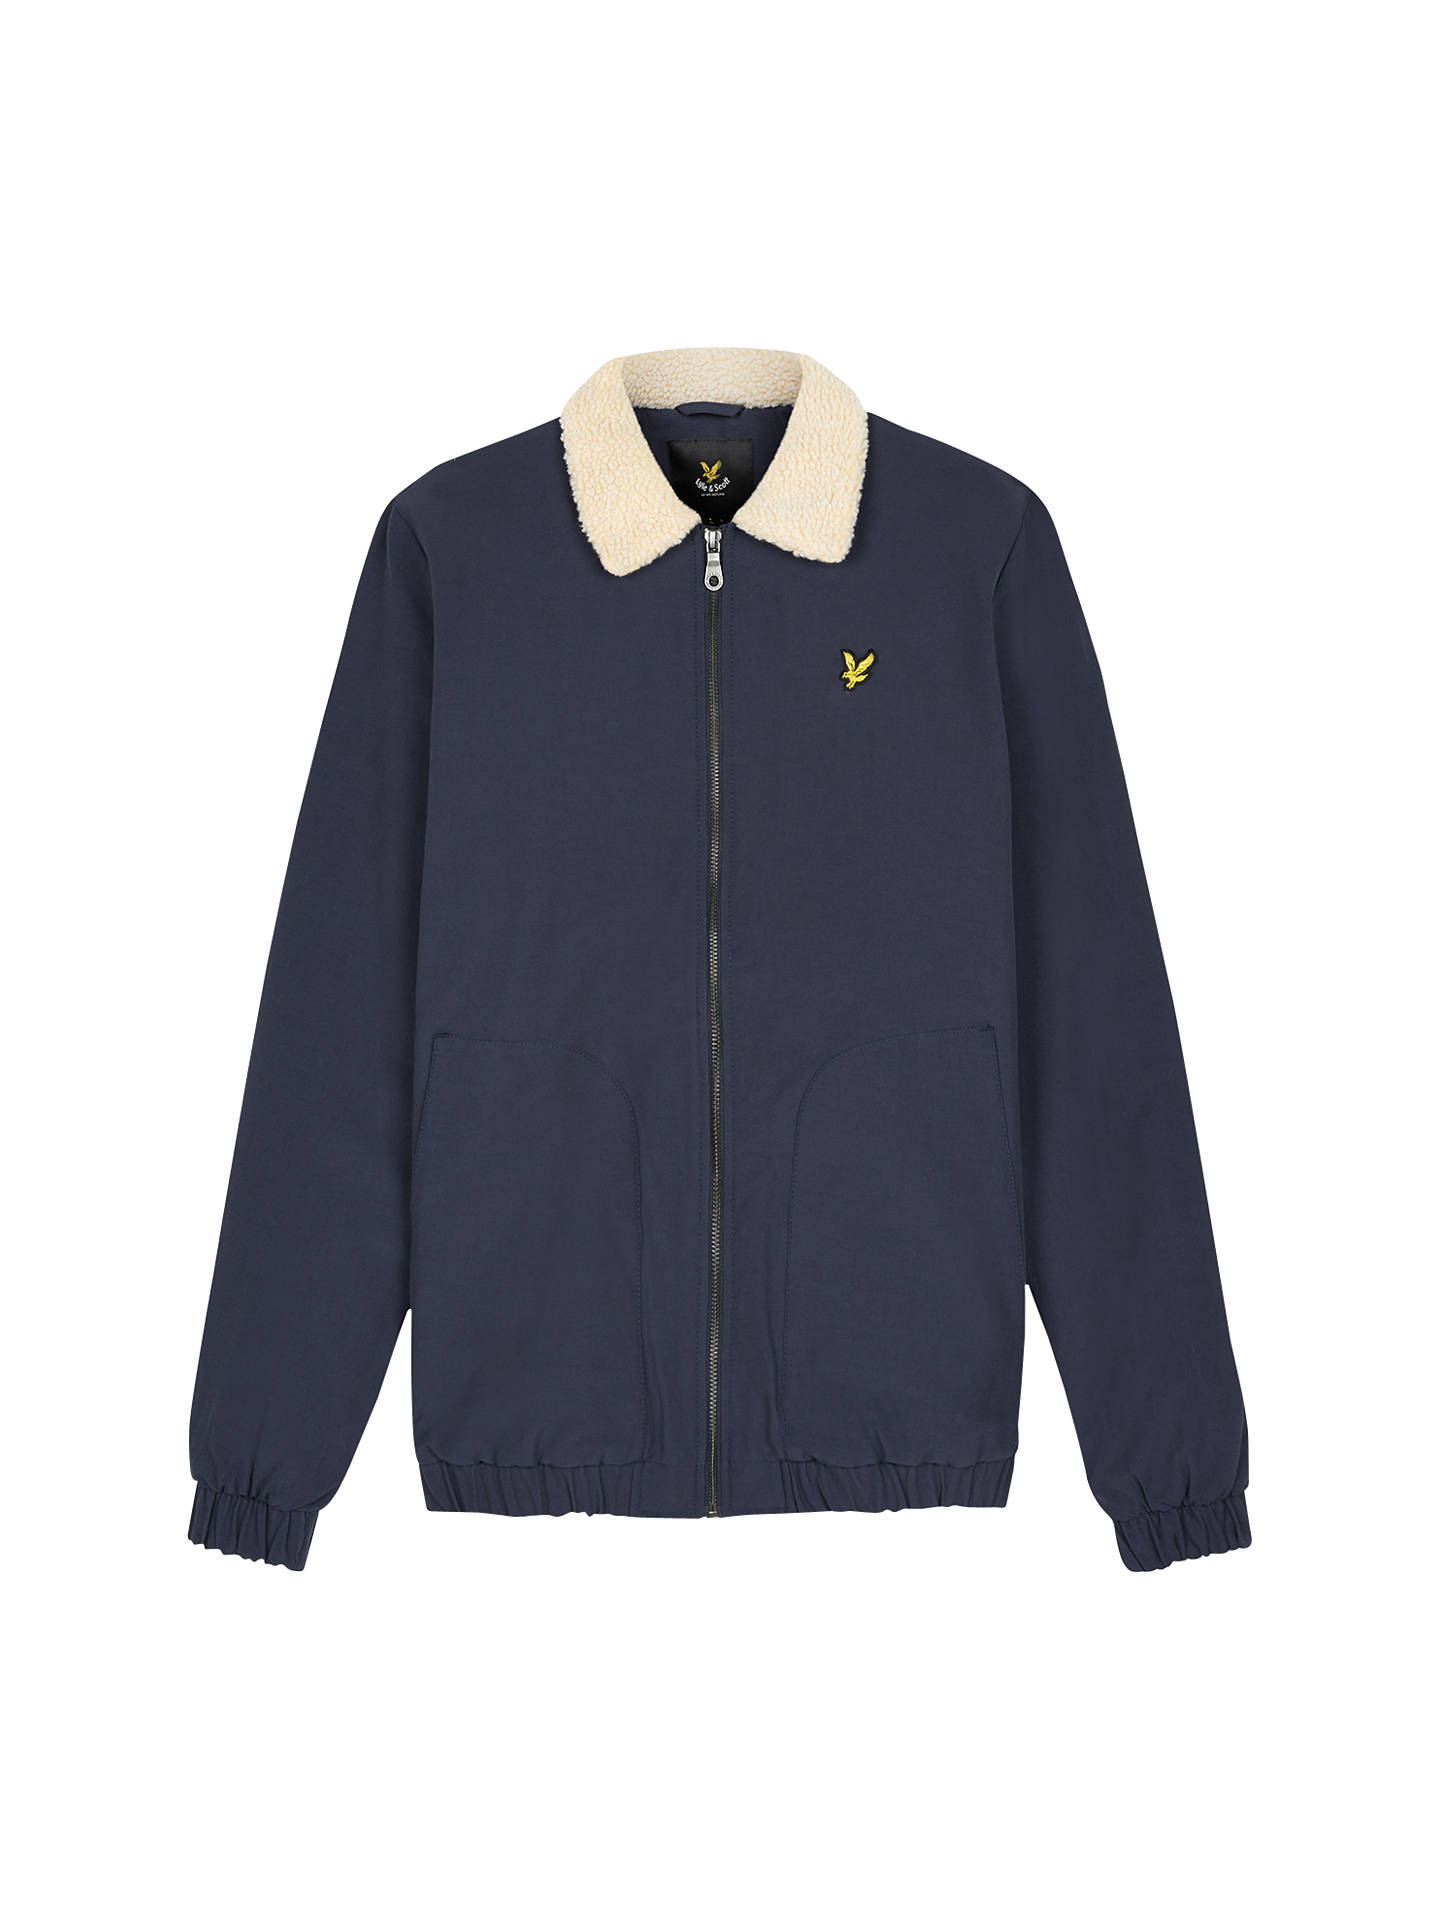 30c09ececf5 Buy Lyle   Scott Shearling-Lined Bomber Jacket